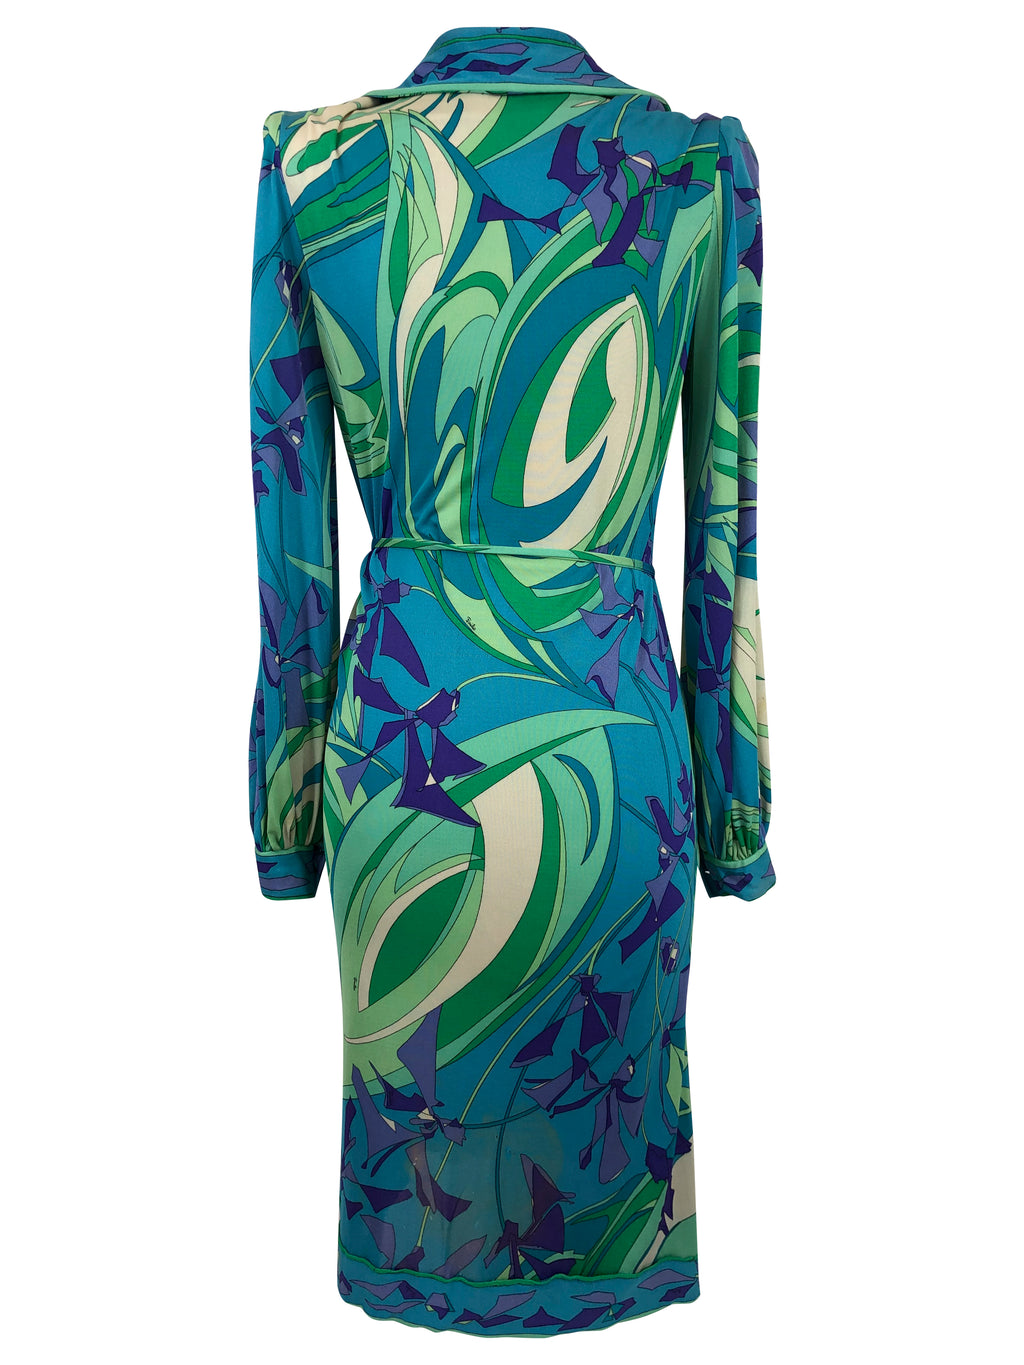 Emilio Pucci 1960s Shift Dress